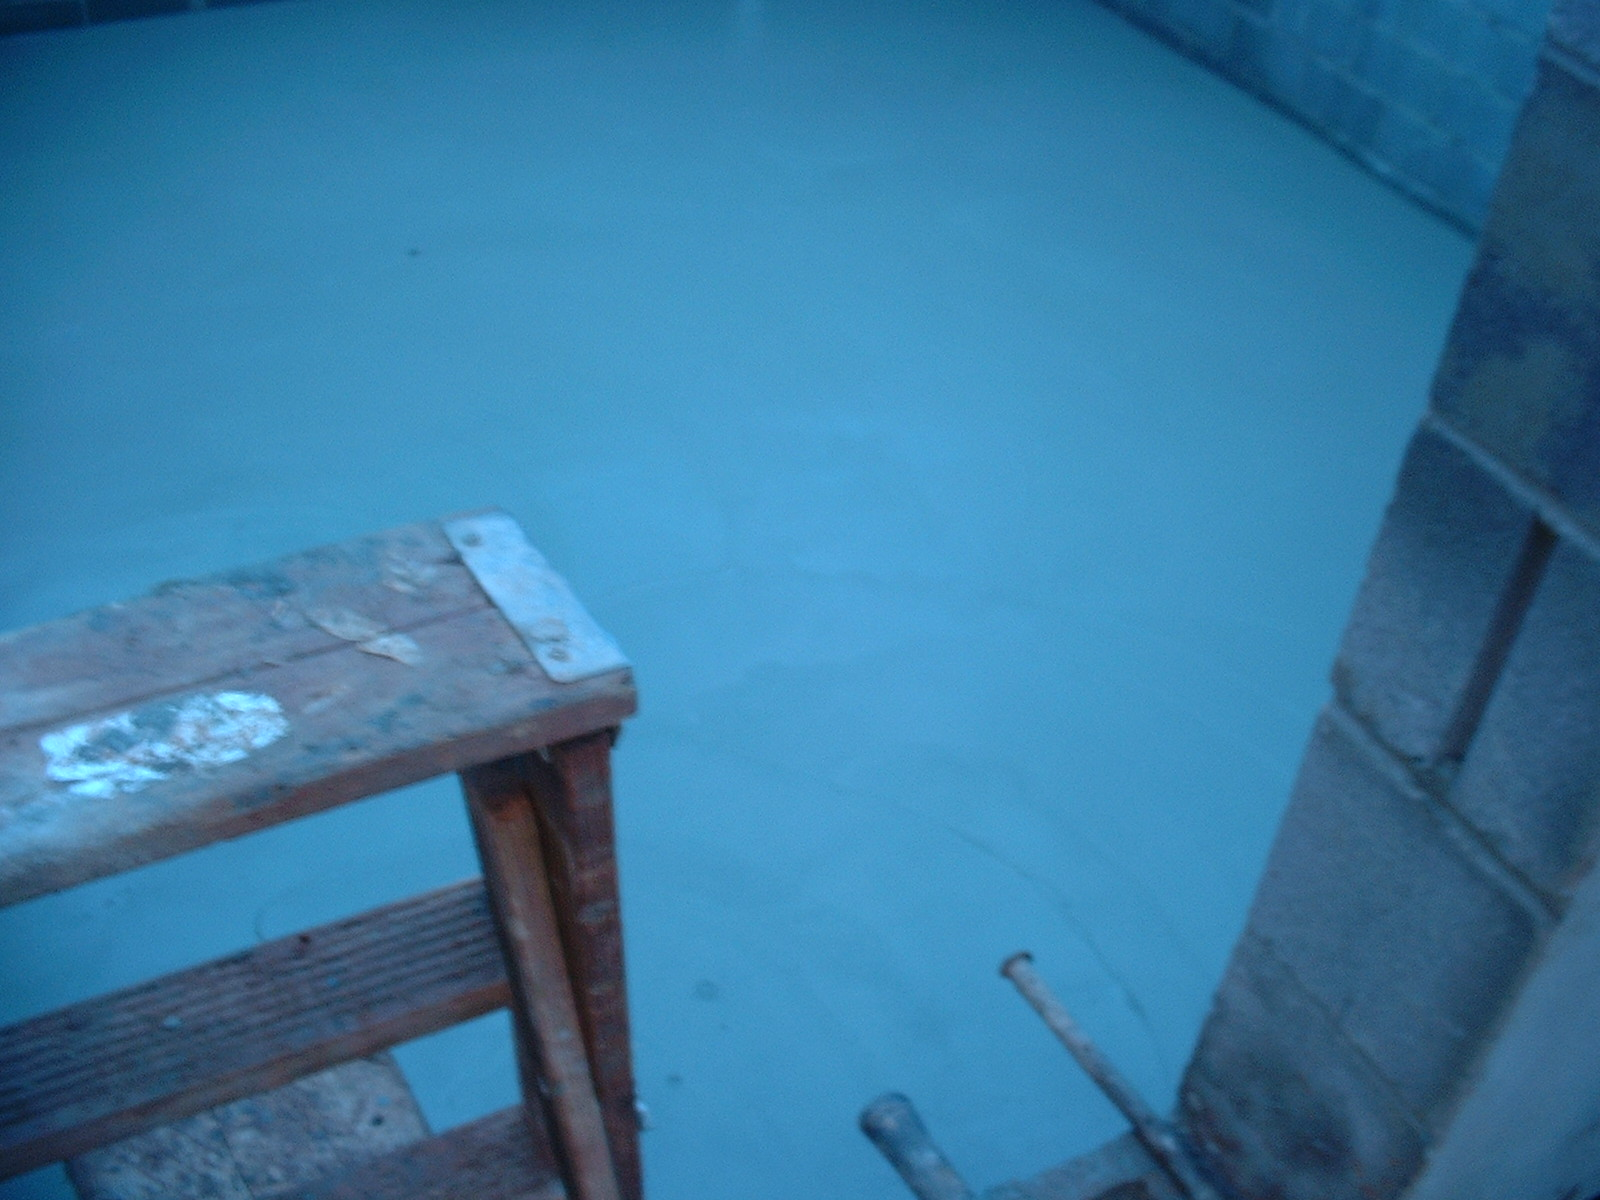 Another picture of the basement floor. The blue color is the tarp.